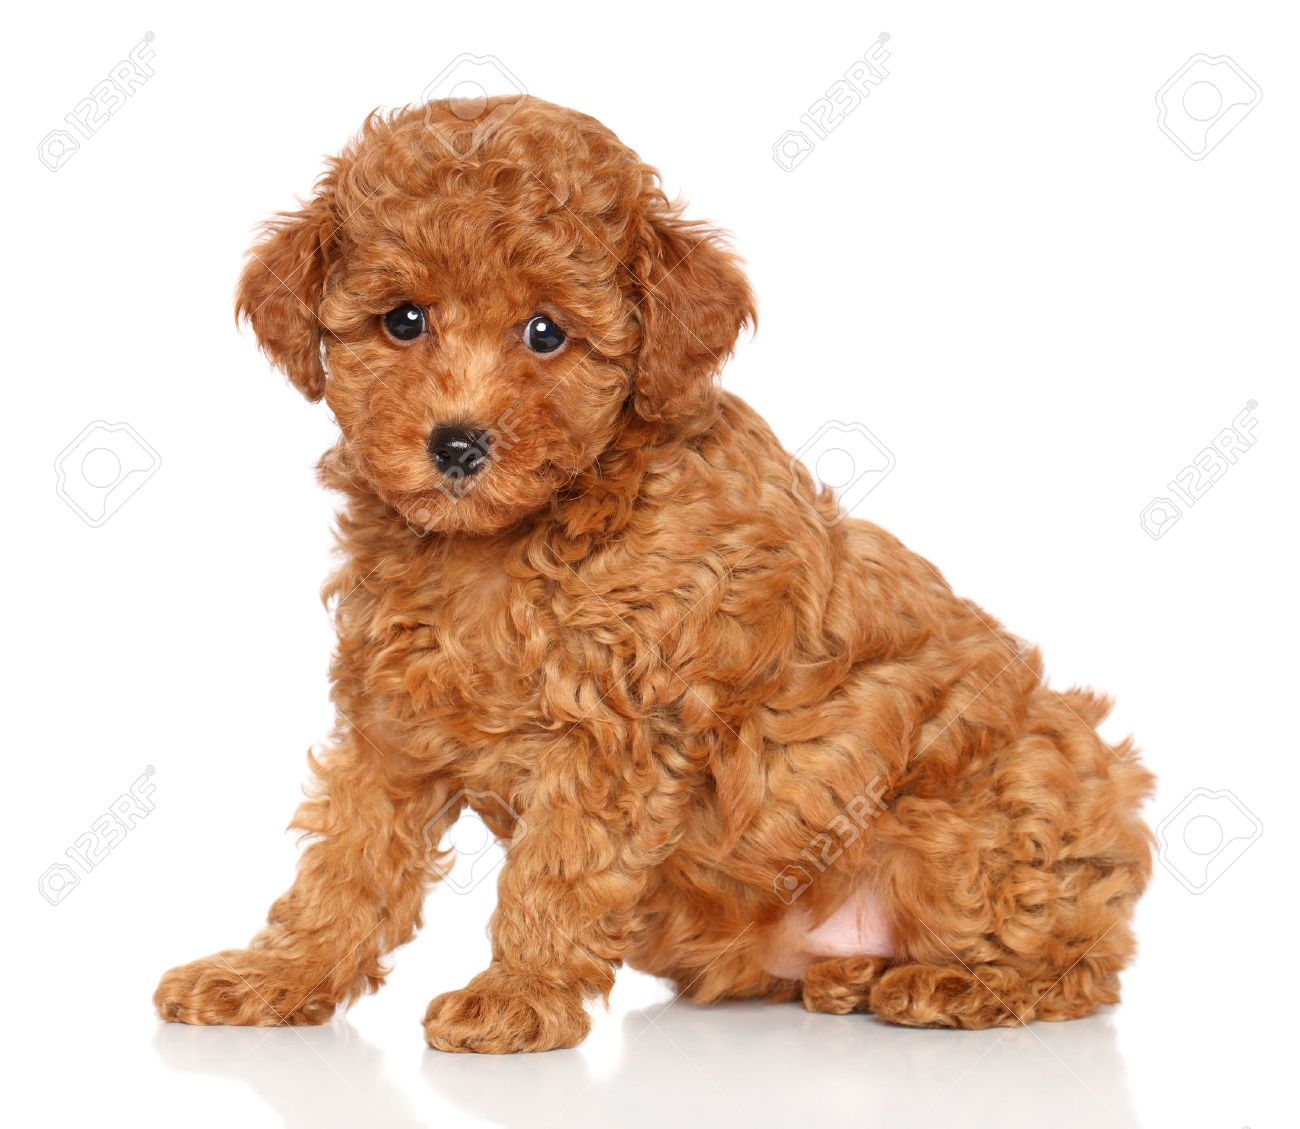 Red Toy Dogs : Red toy poodle puppy sits on a white background stock